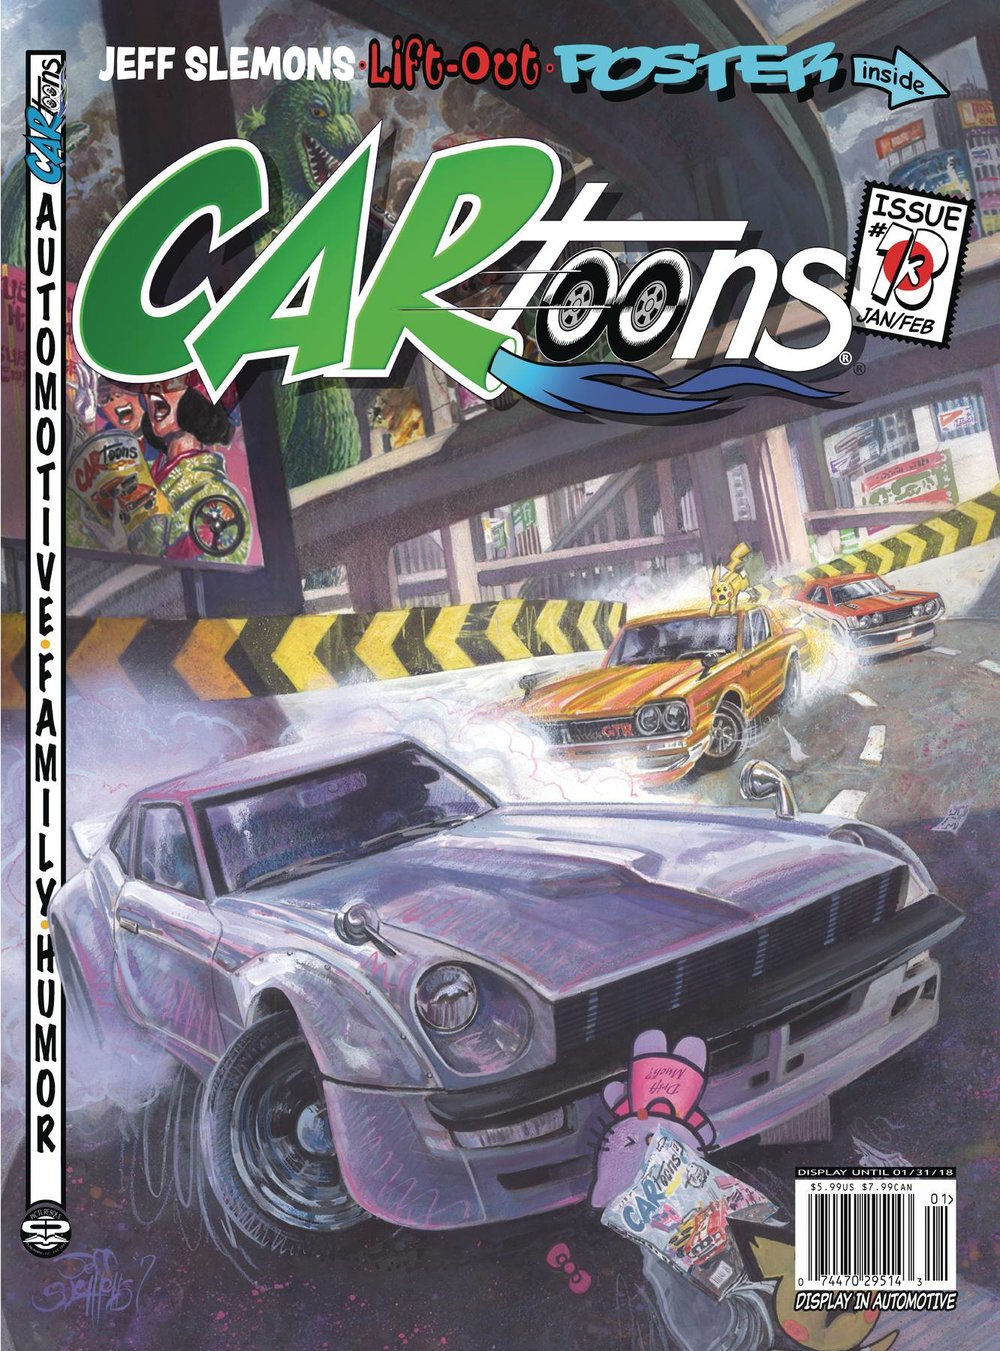 CARTOONS MAGAZINE 13.jpg